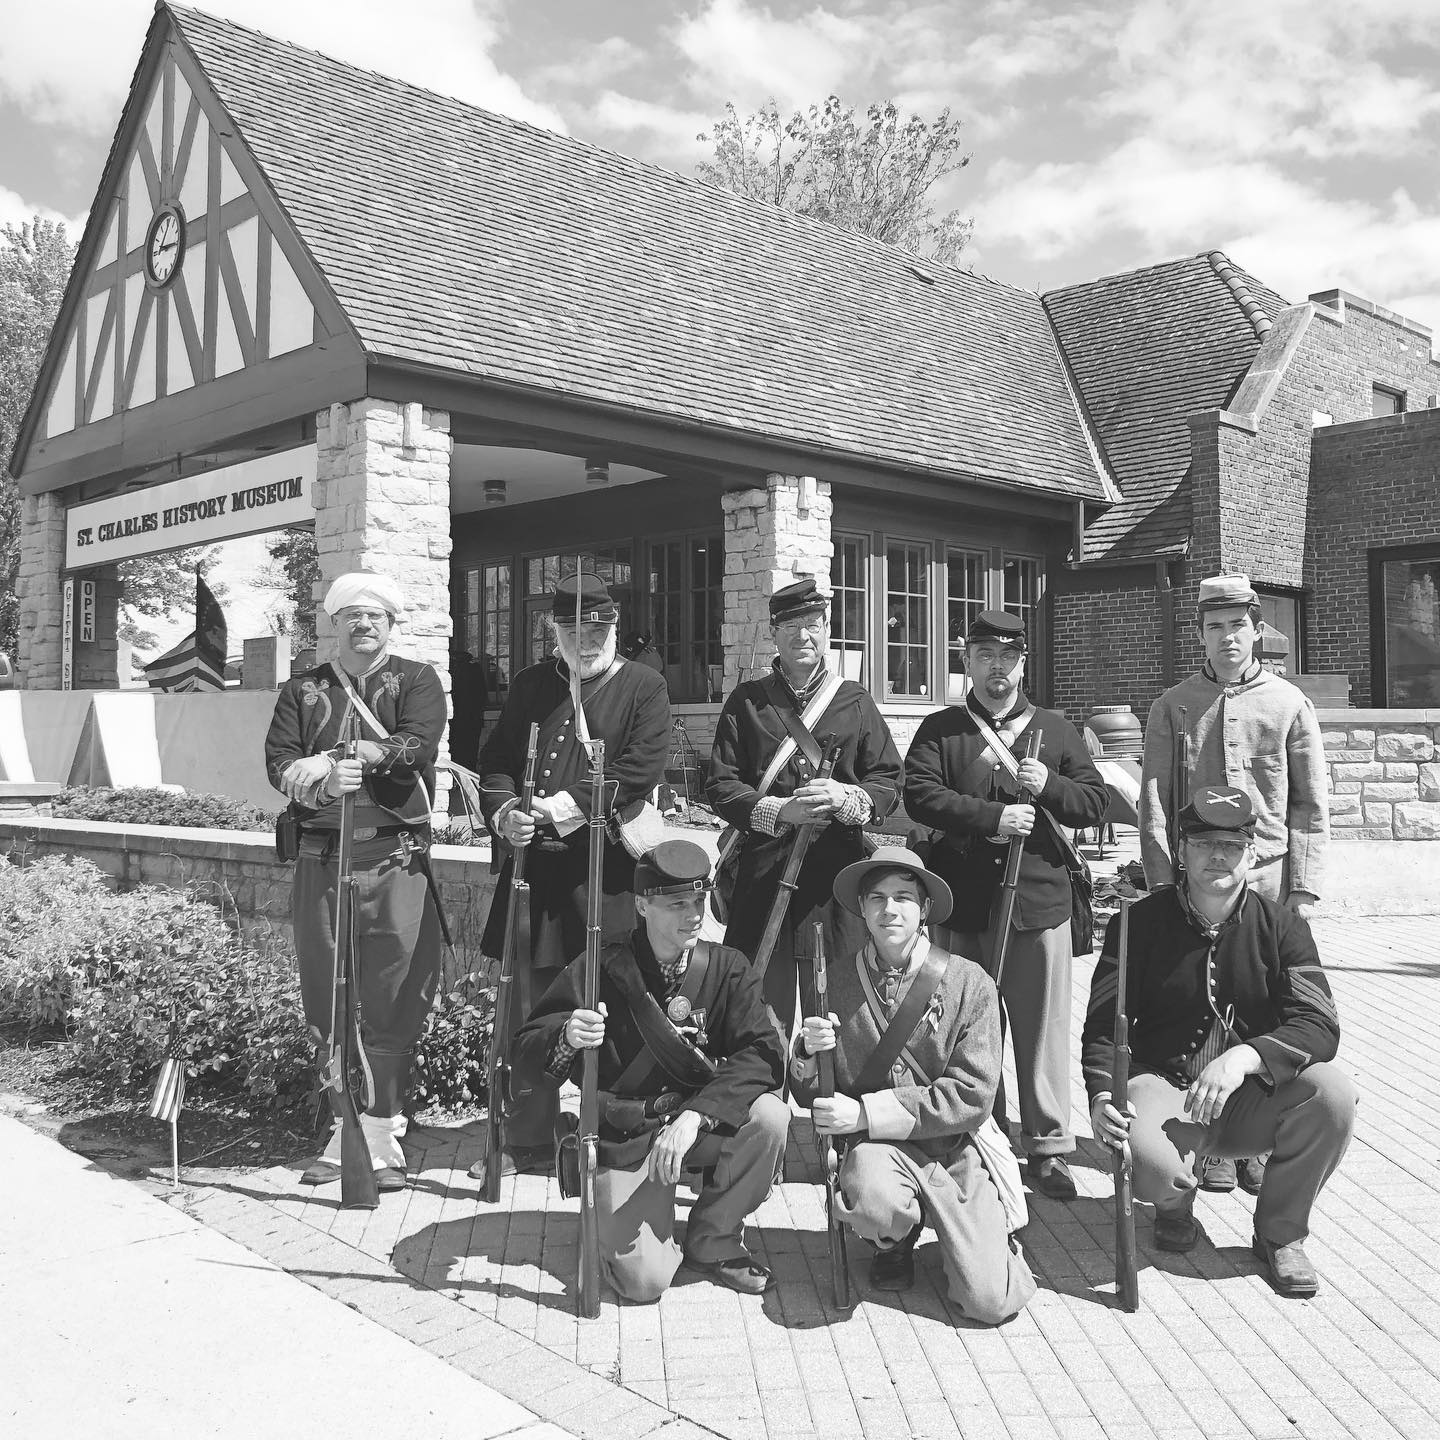 Civil War reenactors outside the museum for our Living History Presentation in recognition of Memorial Day weekend.